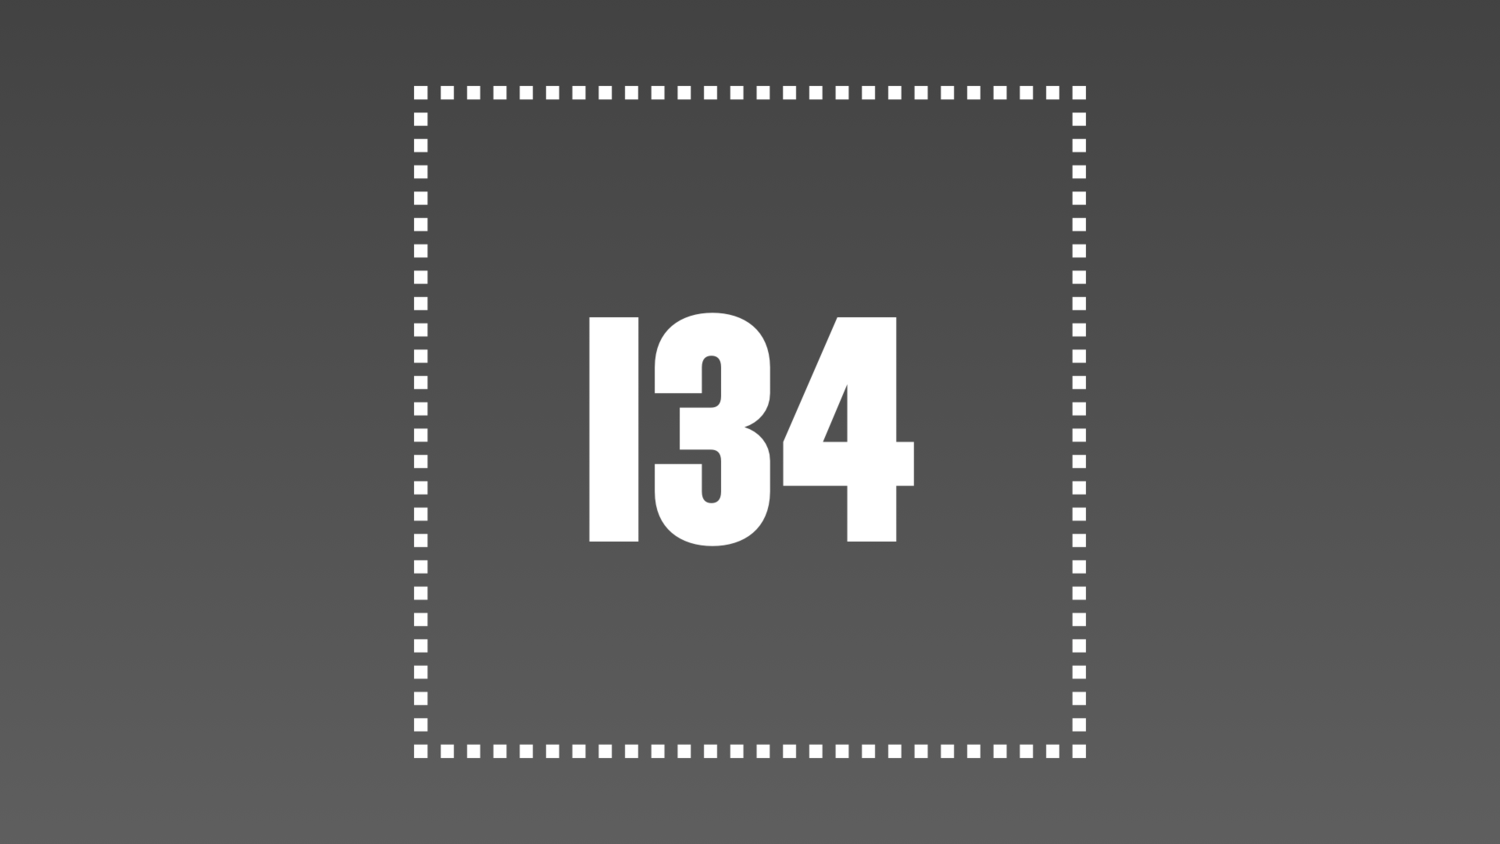 # H.I. 134: Boxing Day